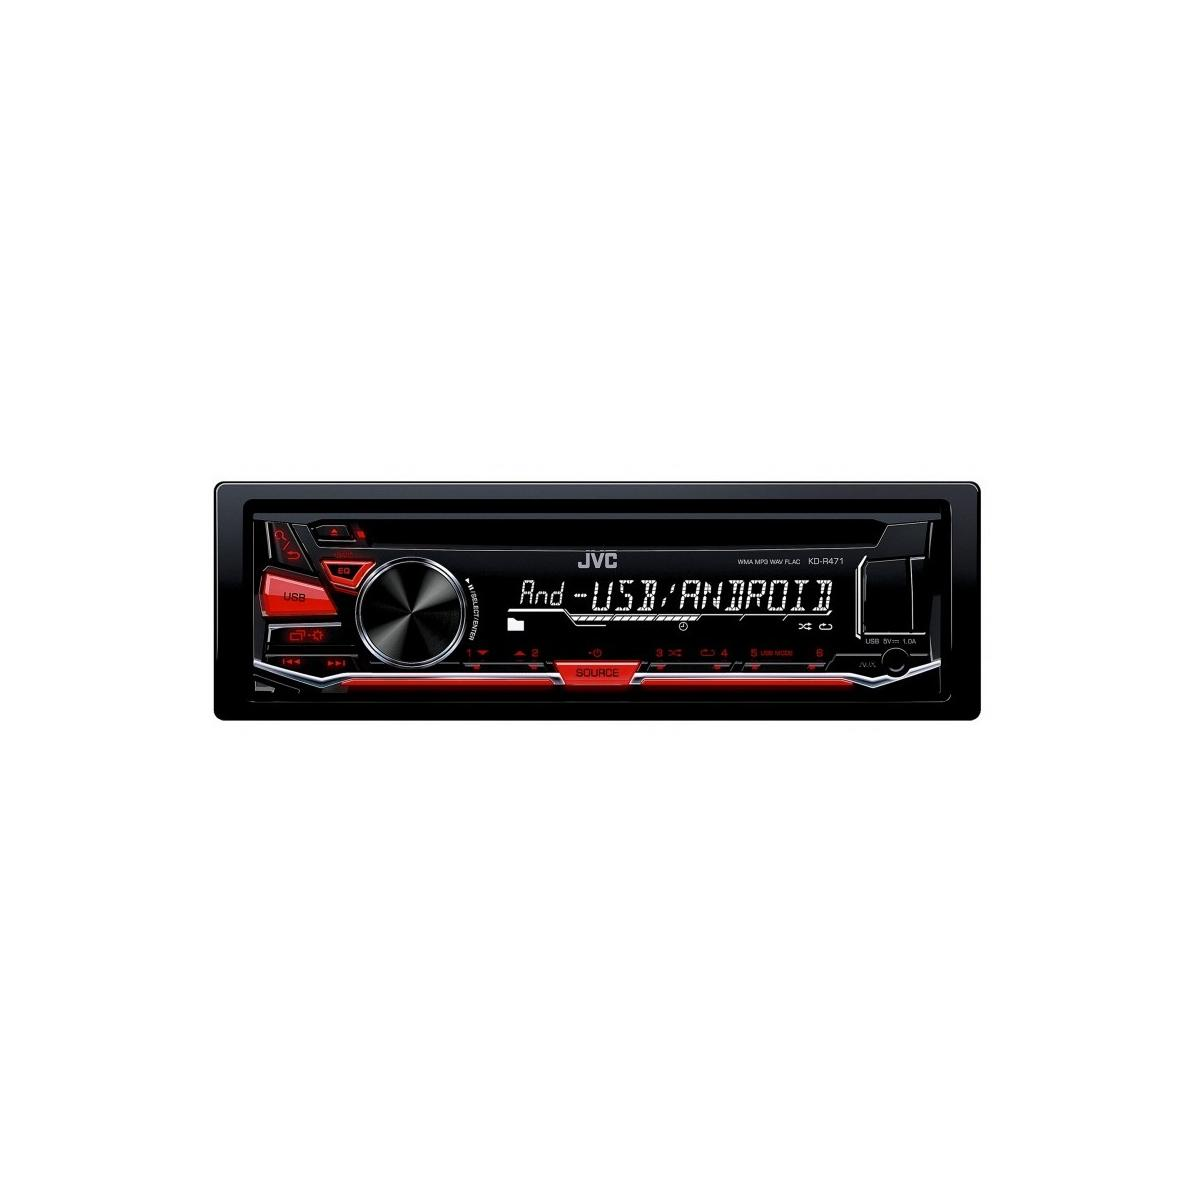 jvc kd r200 wiring diagram 1996 nissan maxima bose stereo r311 26 images